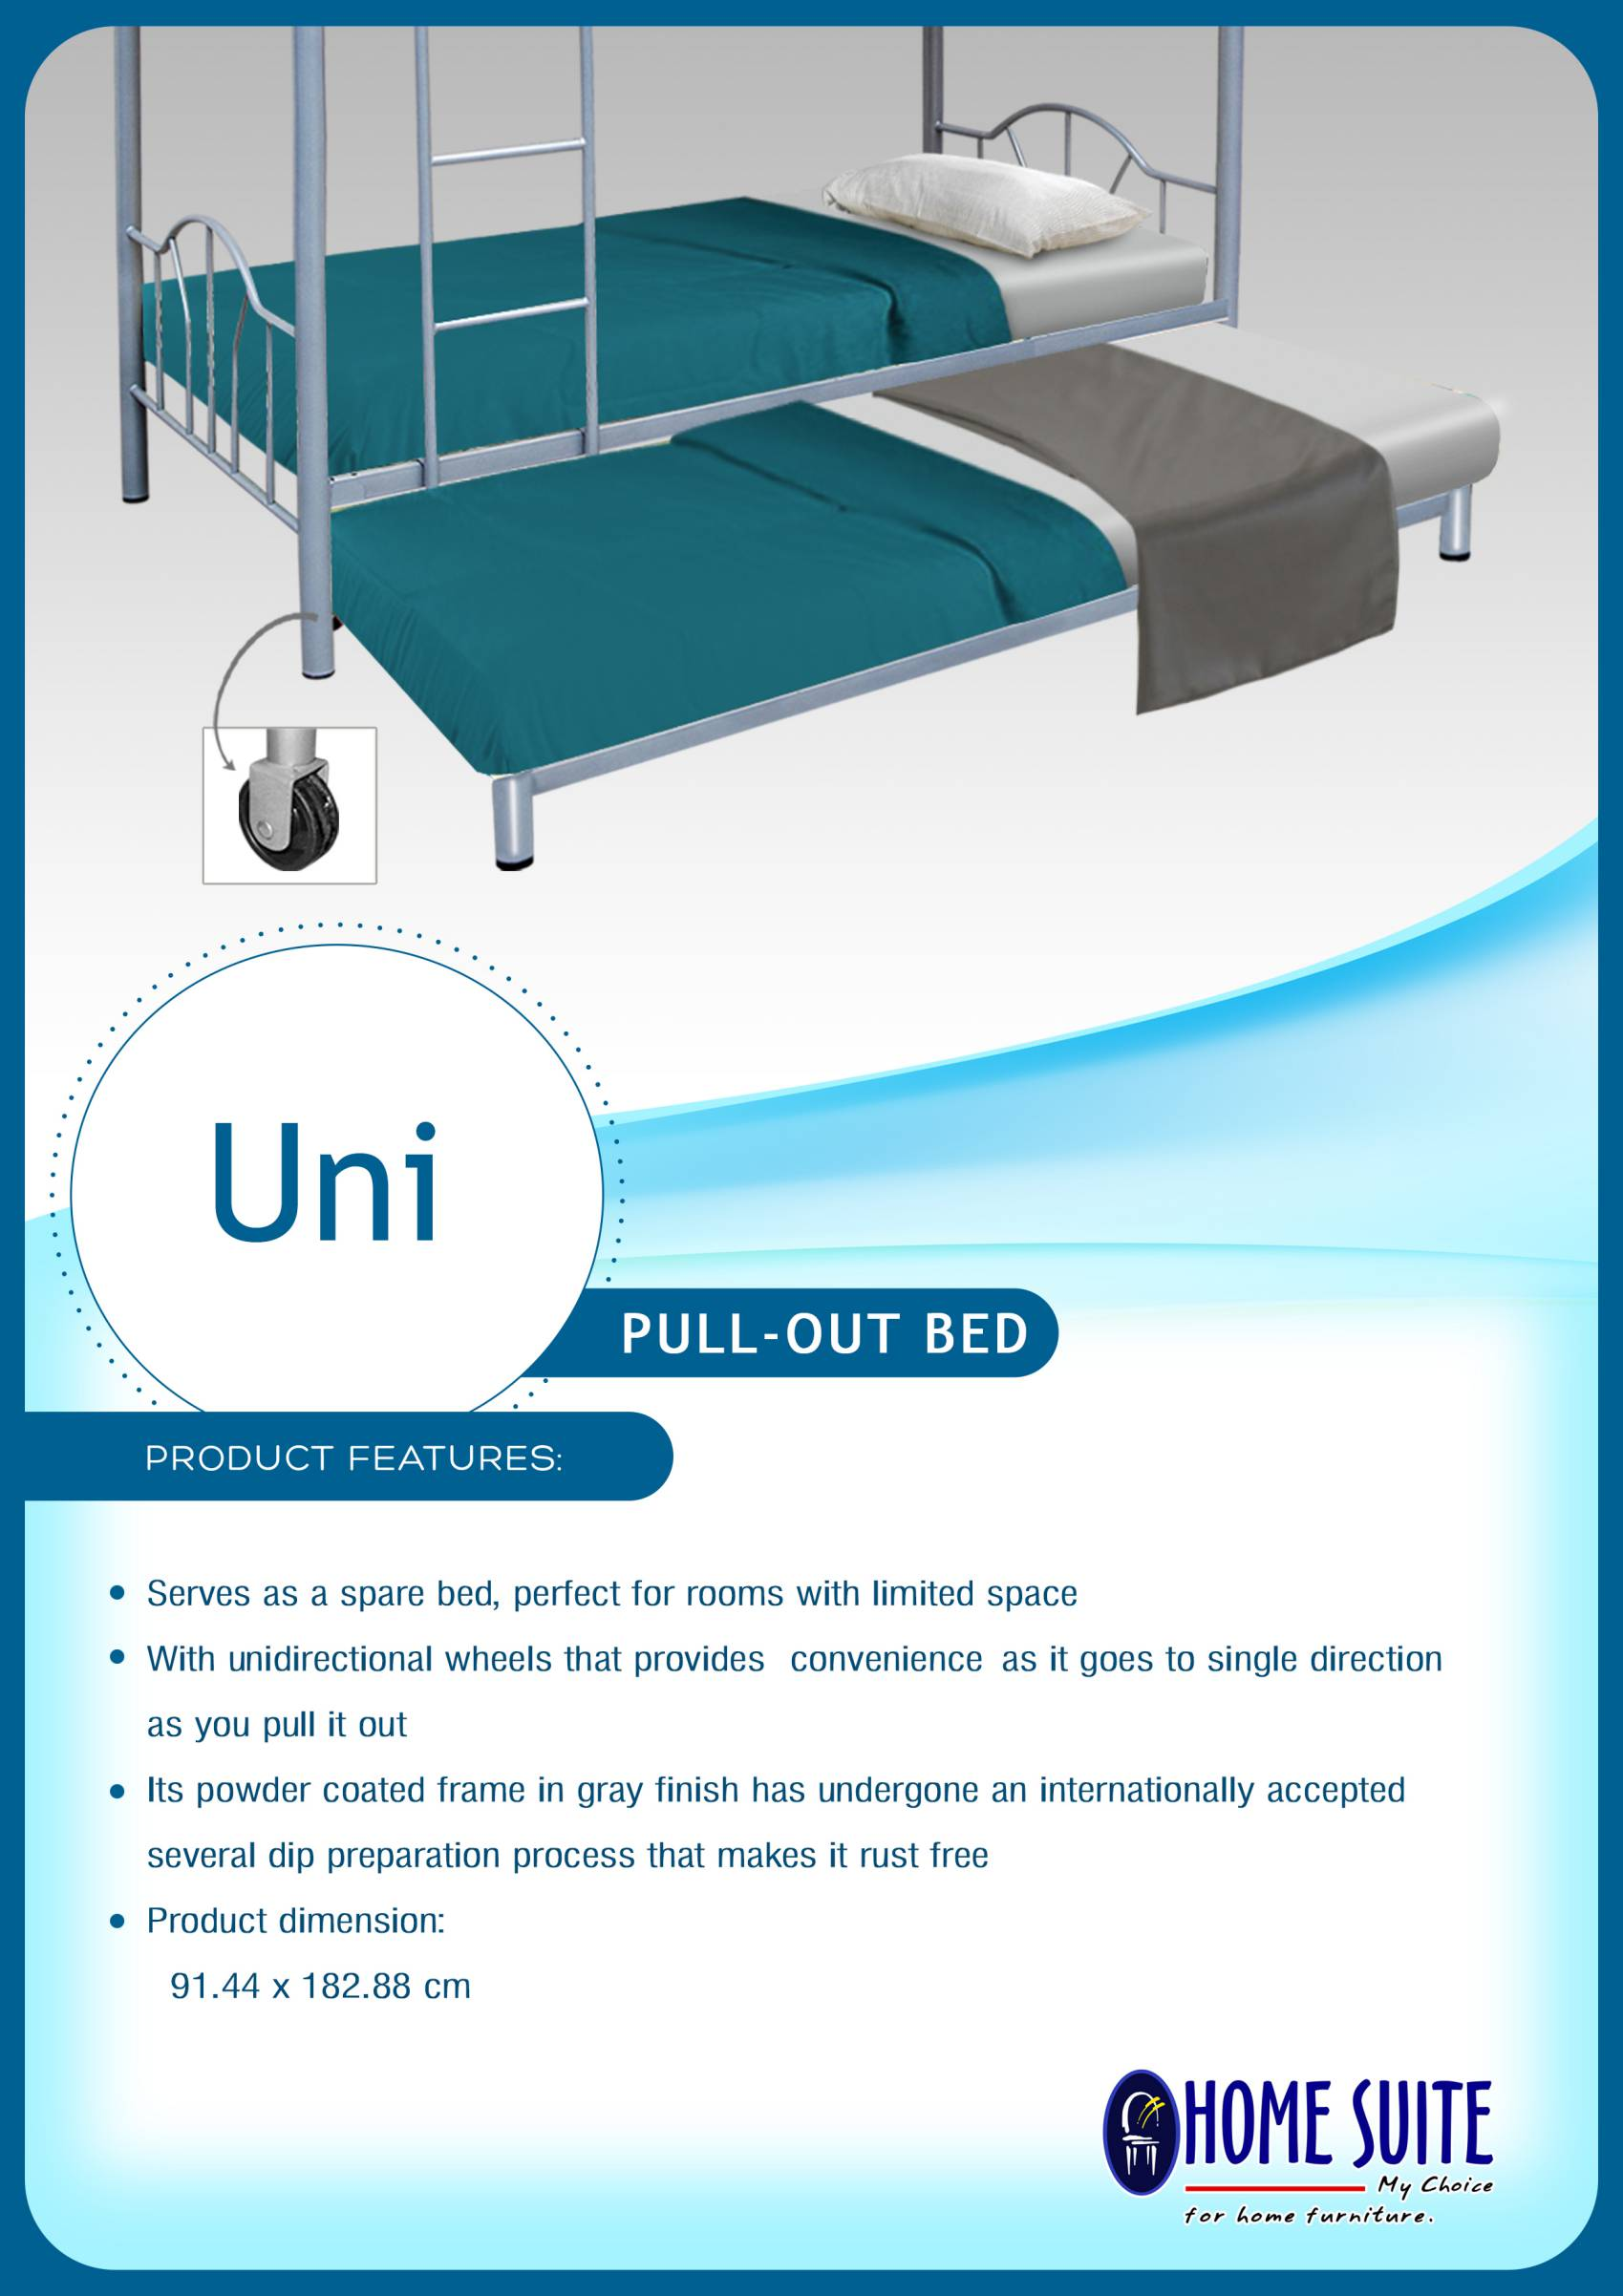 UNI PULLOUT BED